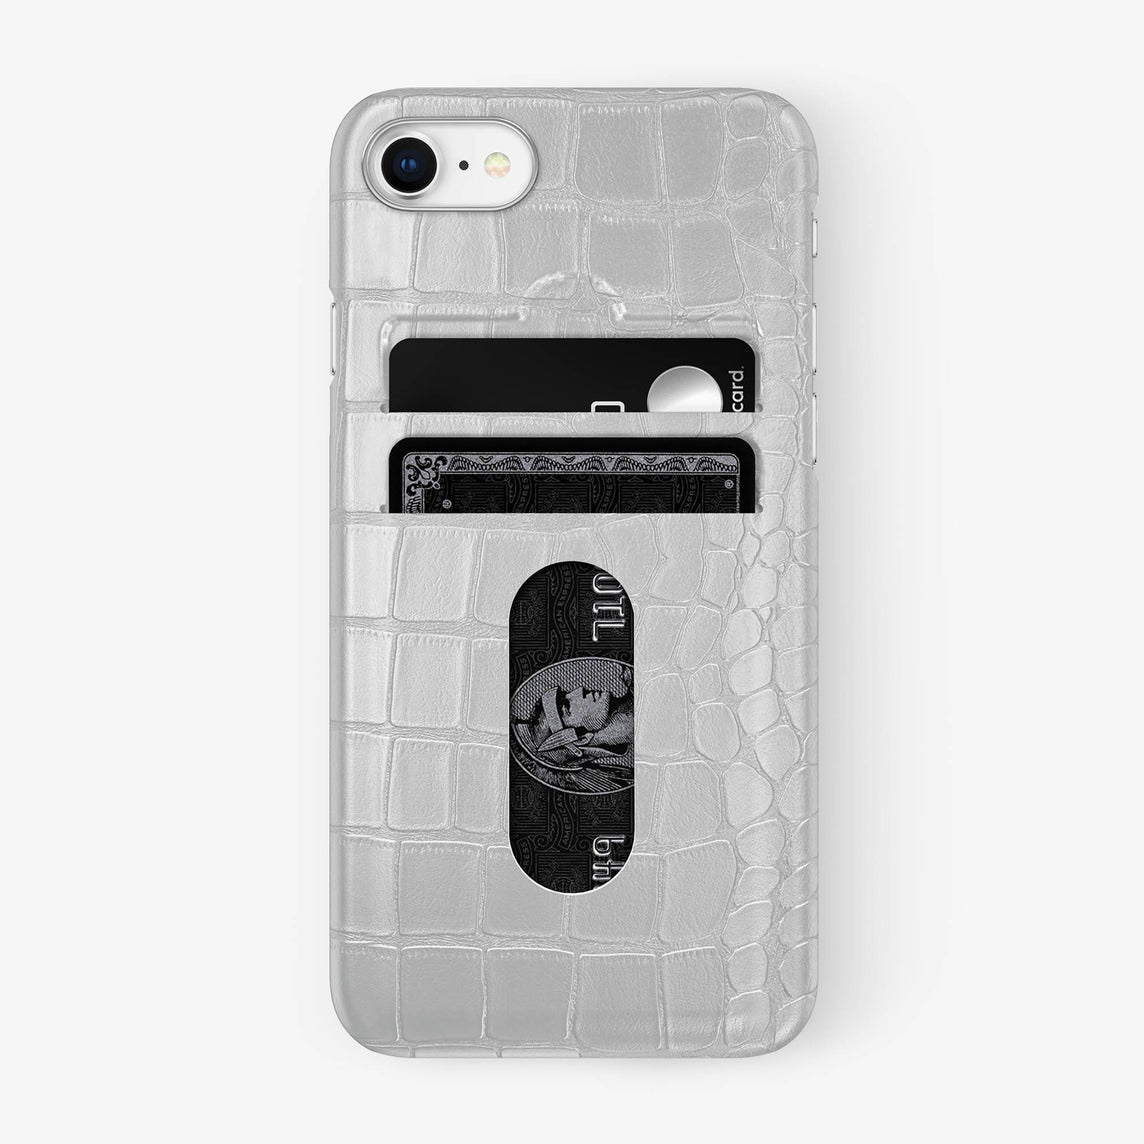 Alligator Card Holder Case iPhone 7/8 | White - Stainless Steel